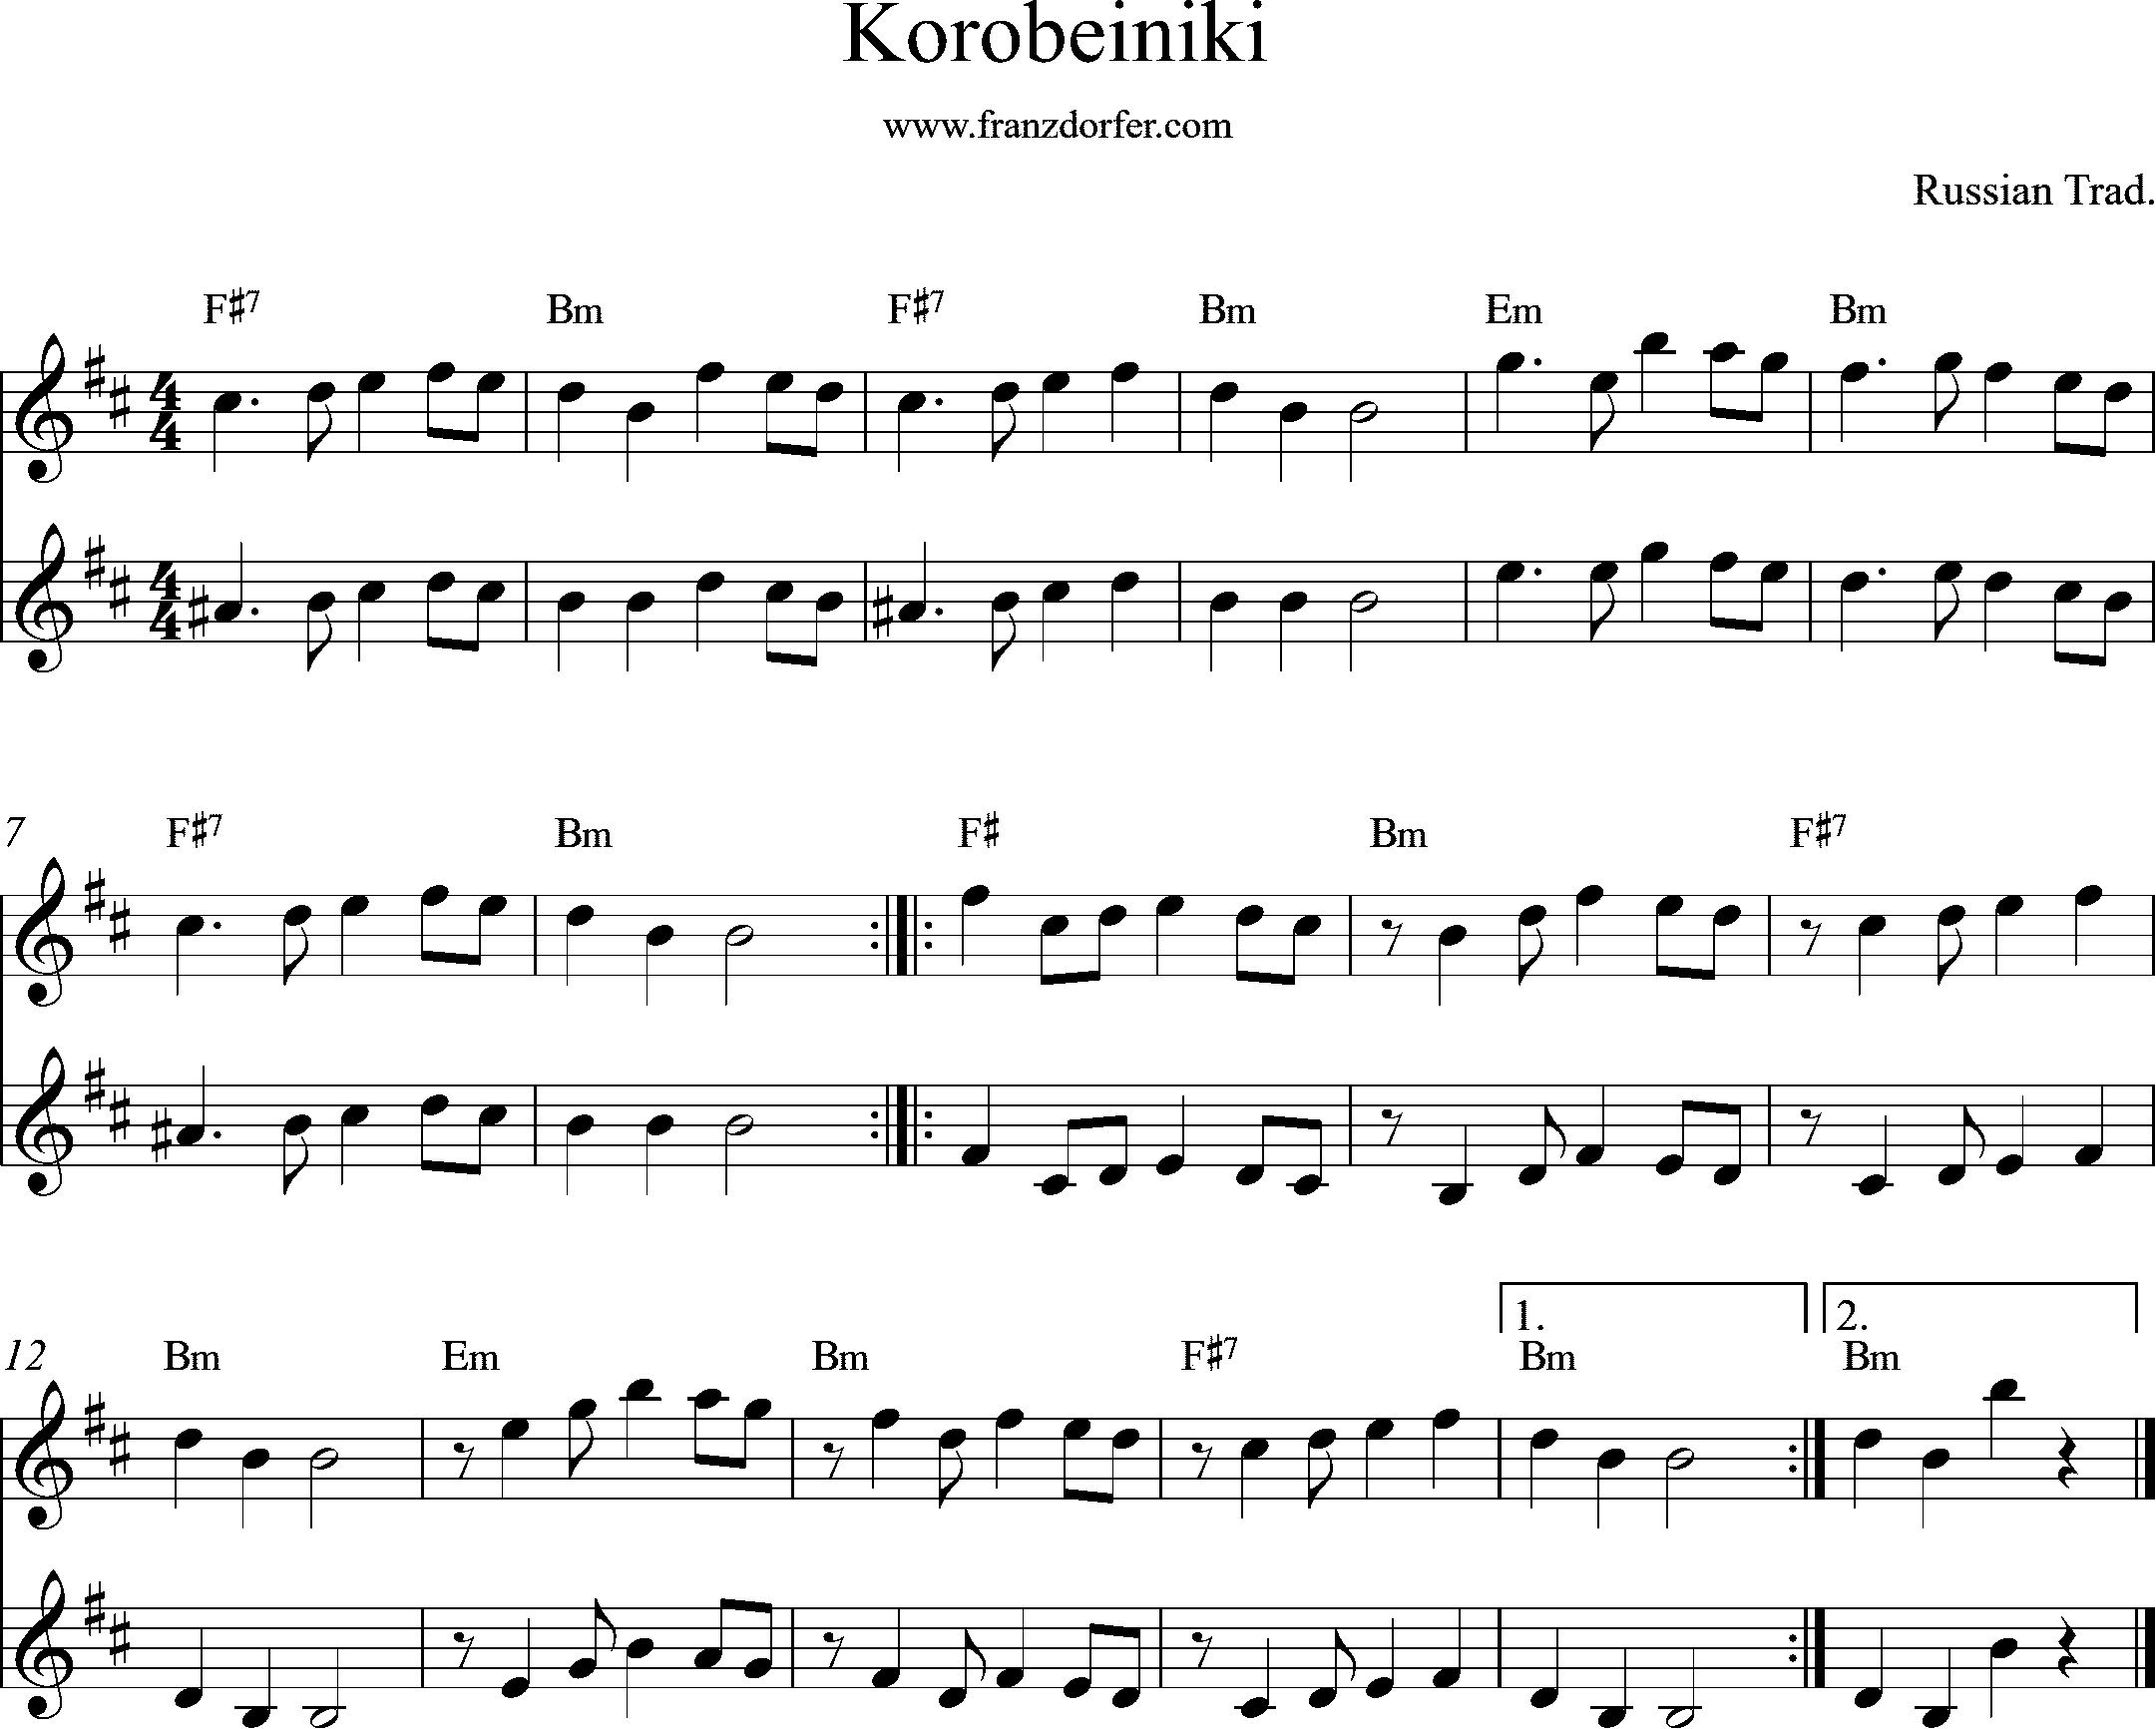 sheetmusic Korobeiniki -Tetris